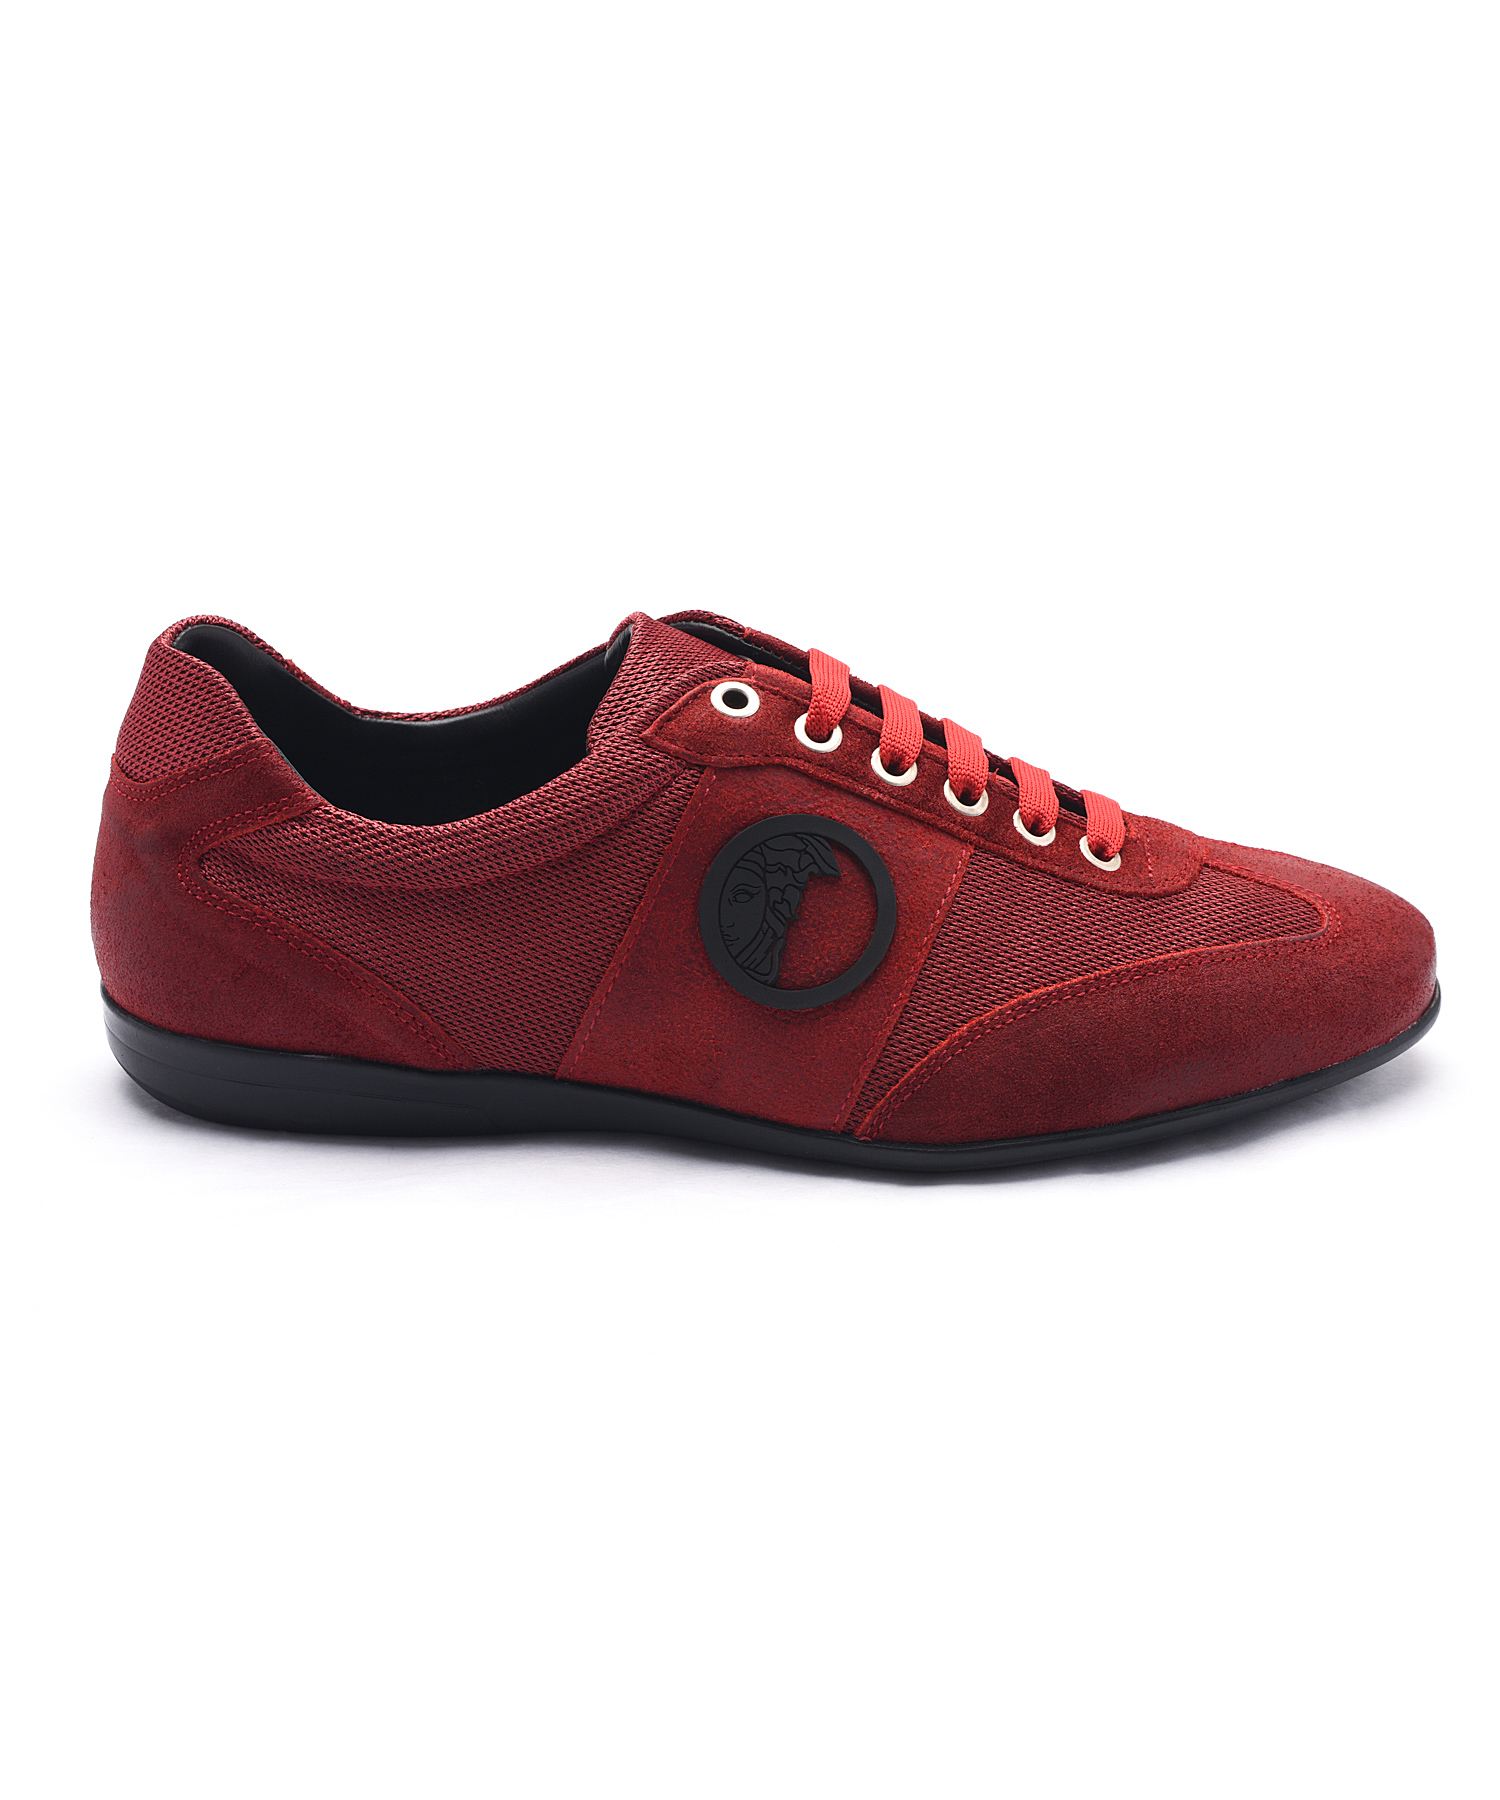 Lyst - Versace Medusa Logo Low Top Sneakers in Red for Men